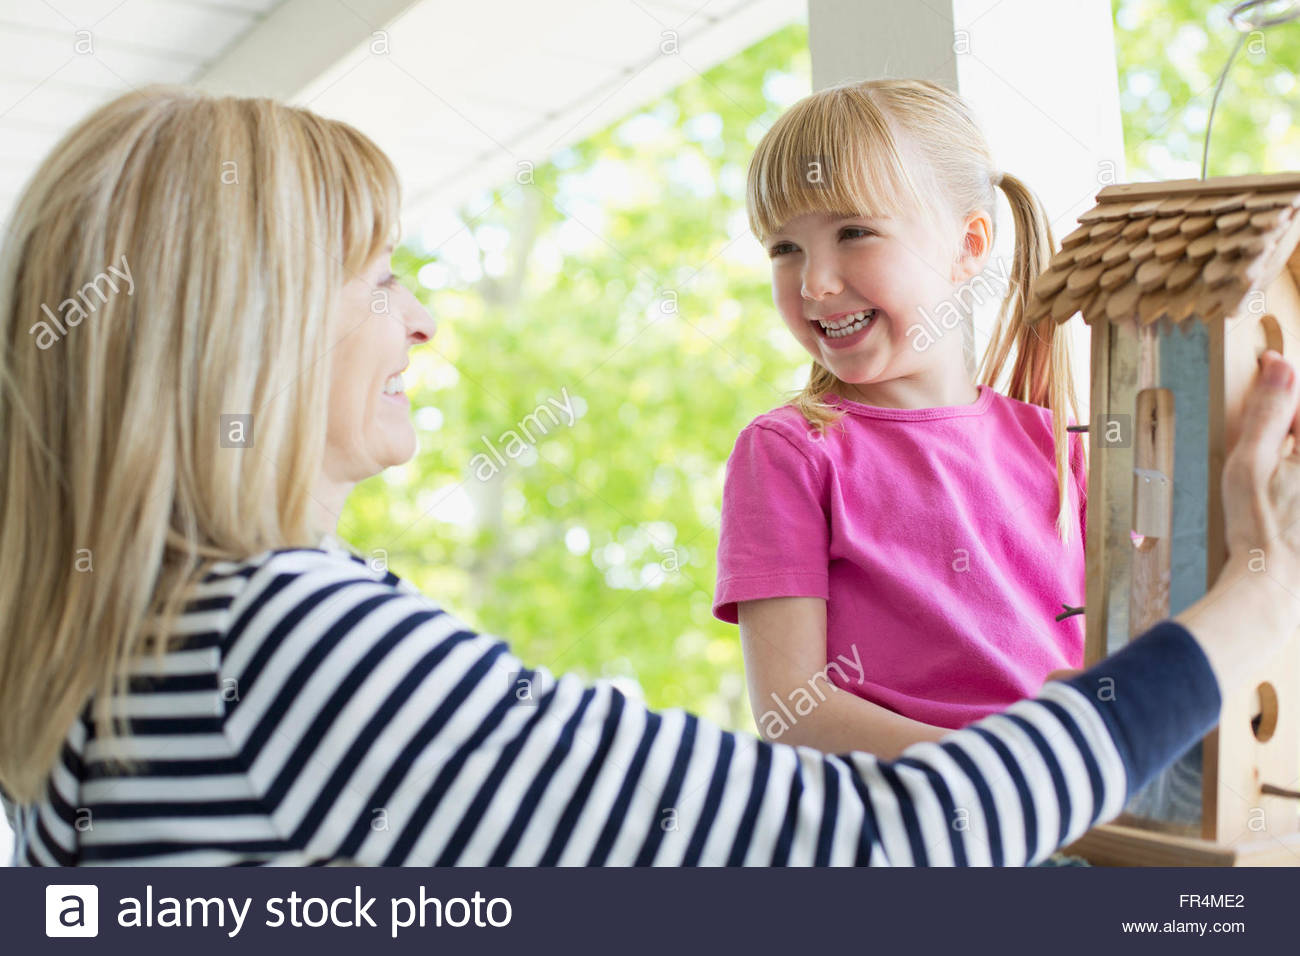 mature womam hanging a bird feeder with her grandaughter - Stock Image